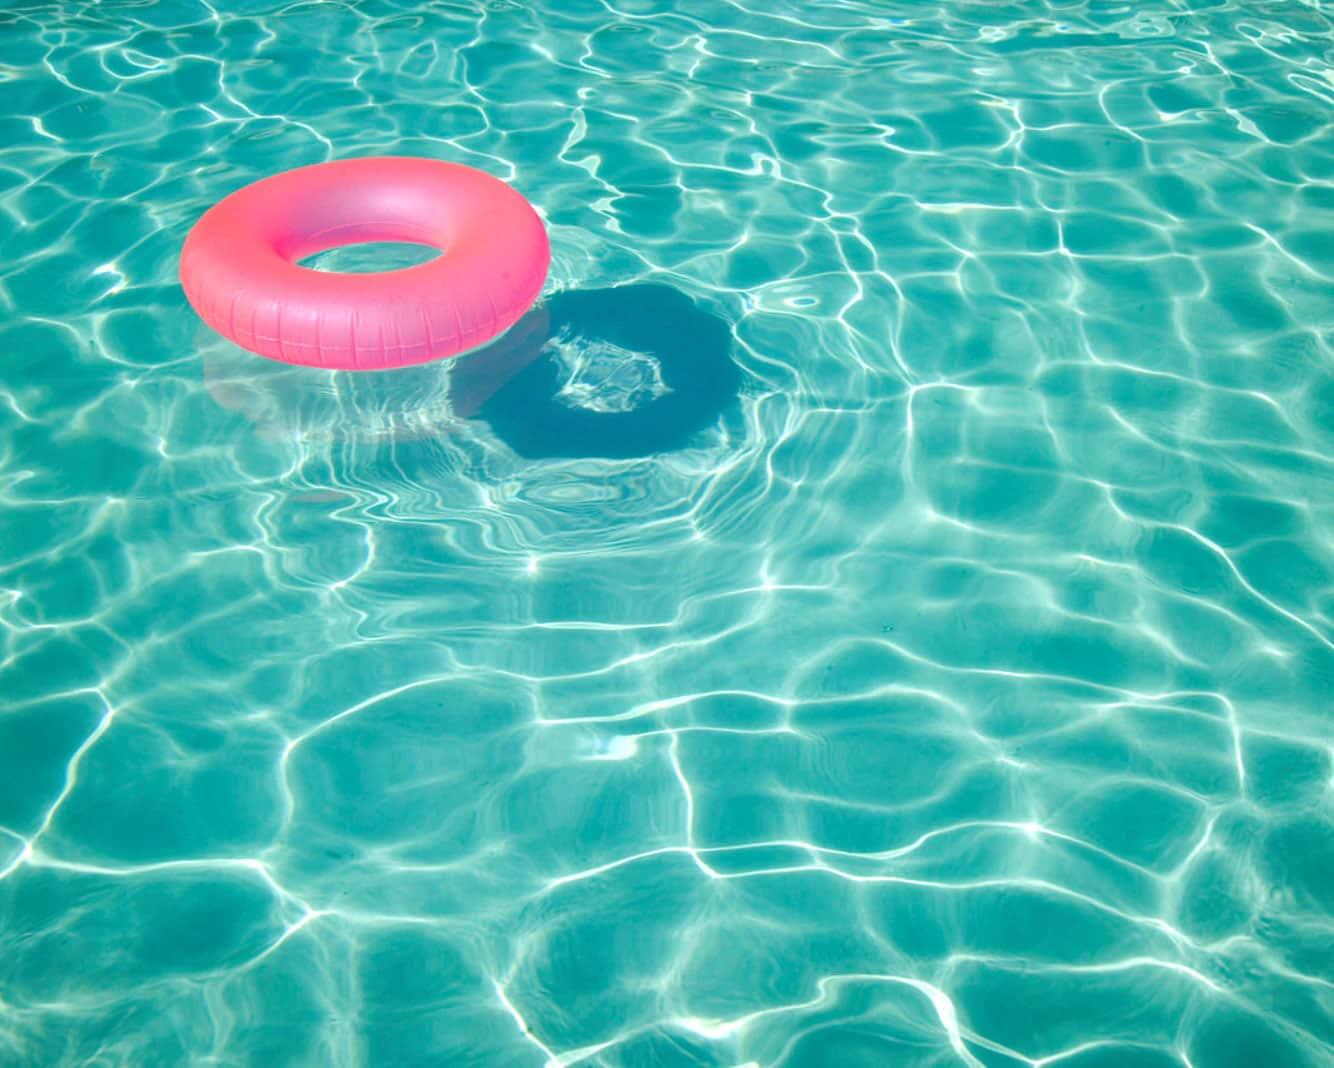 Pink inflatable floating in a pool